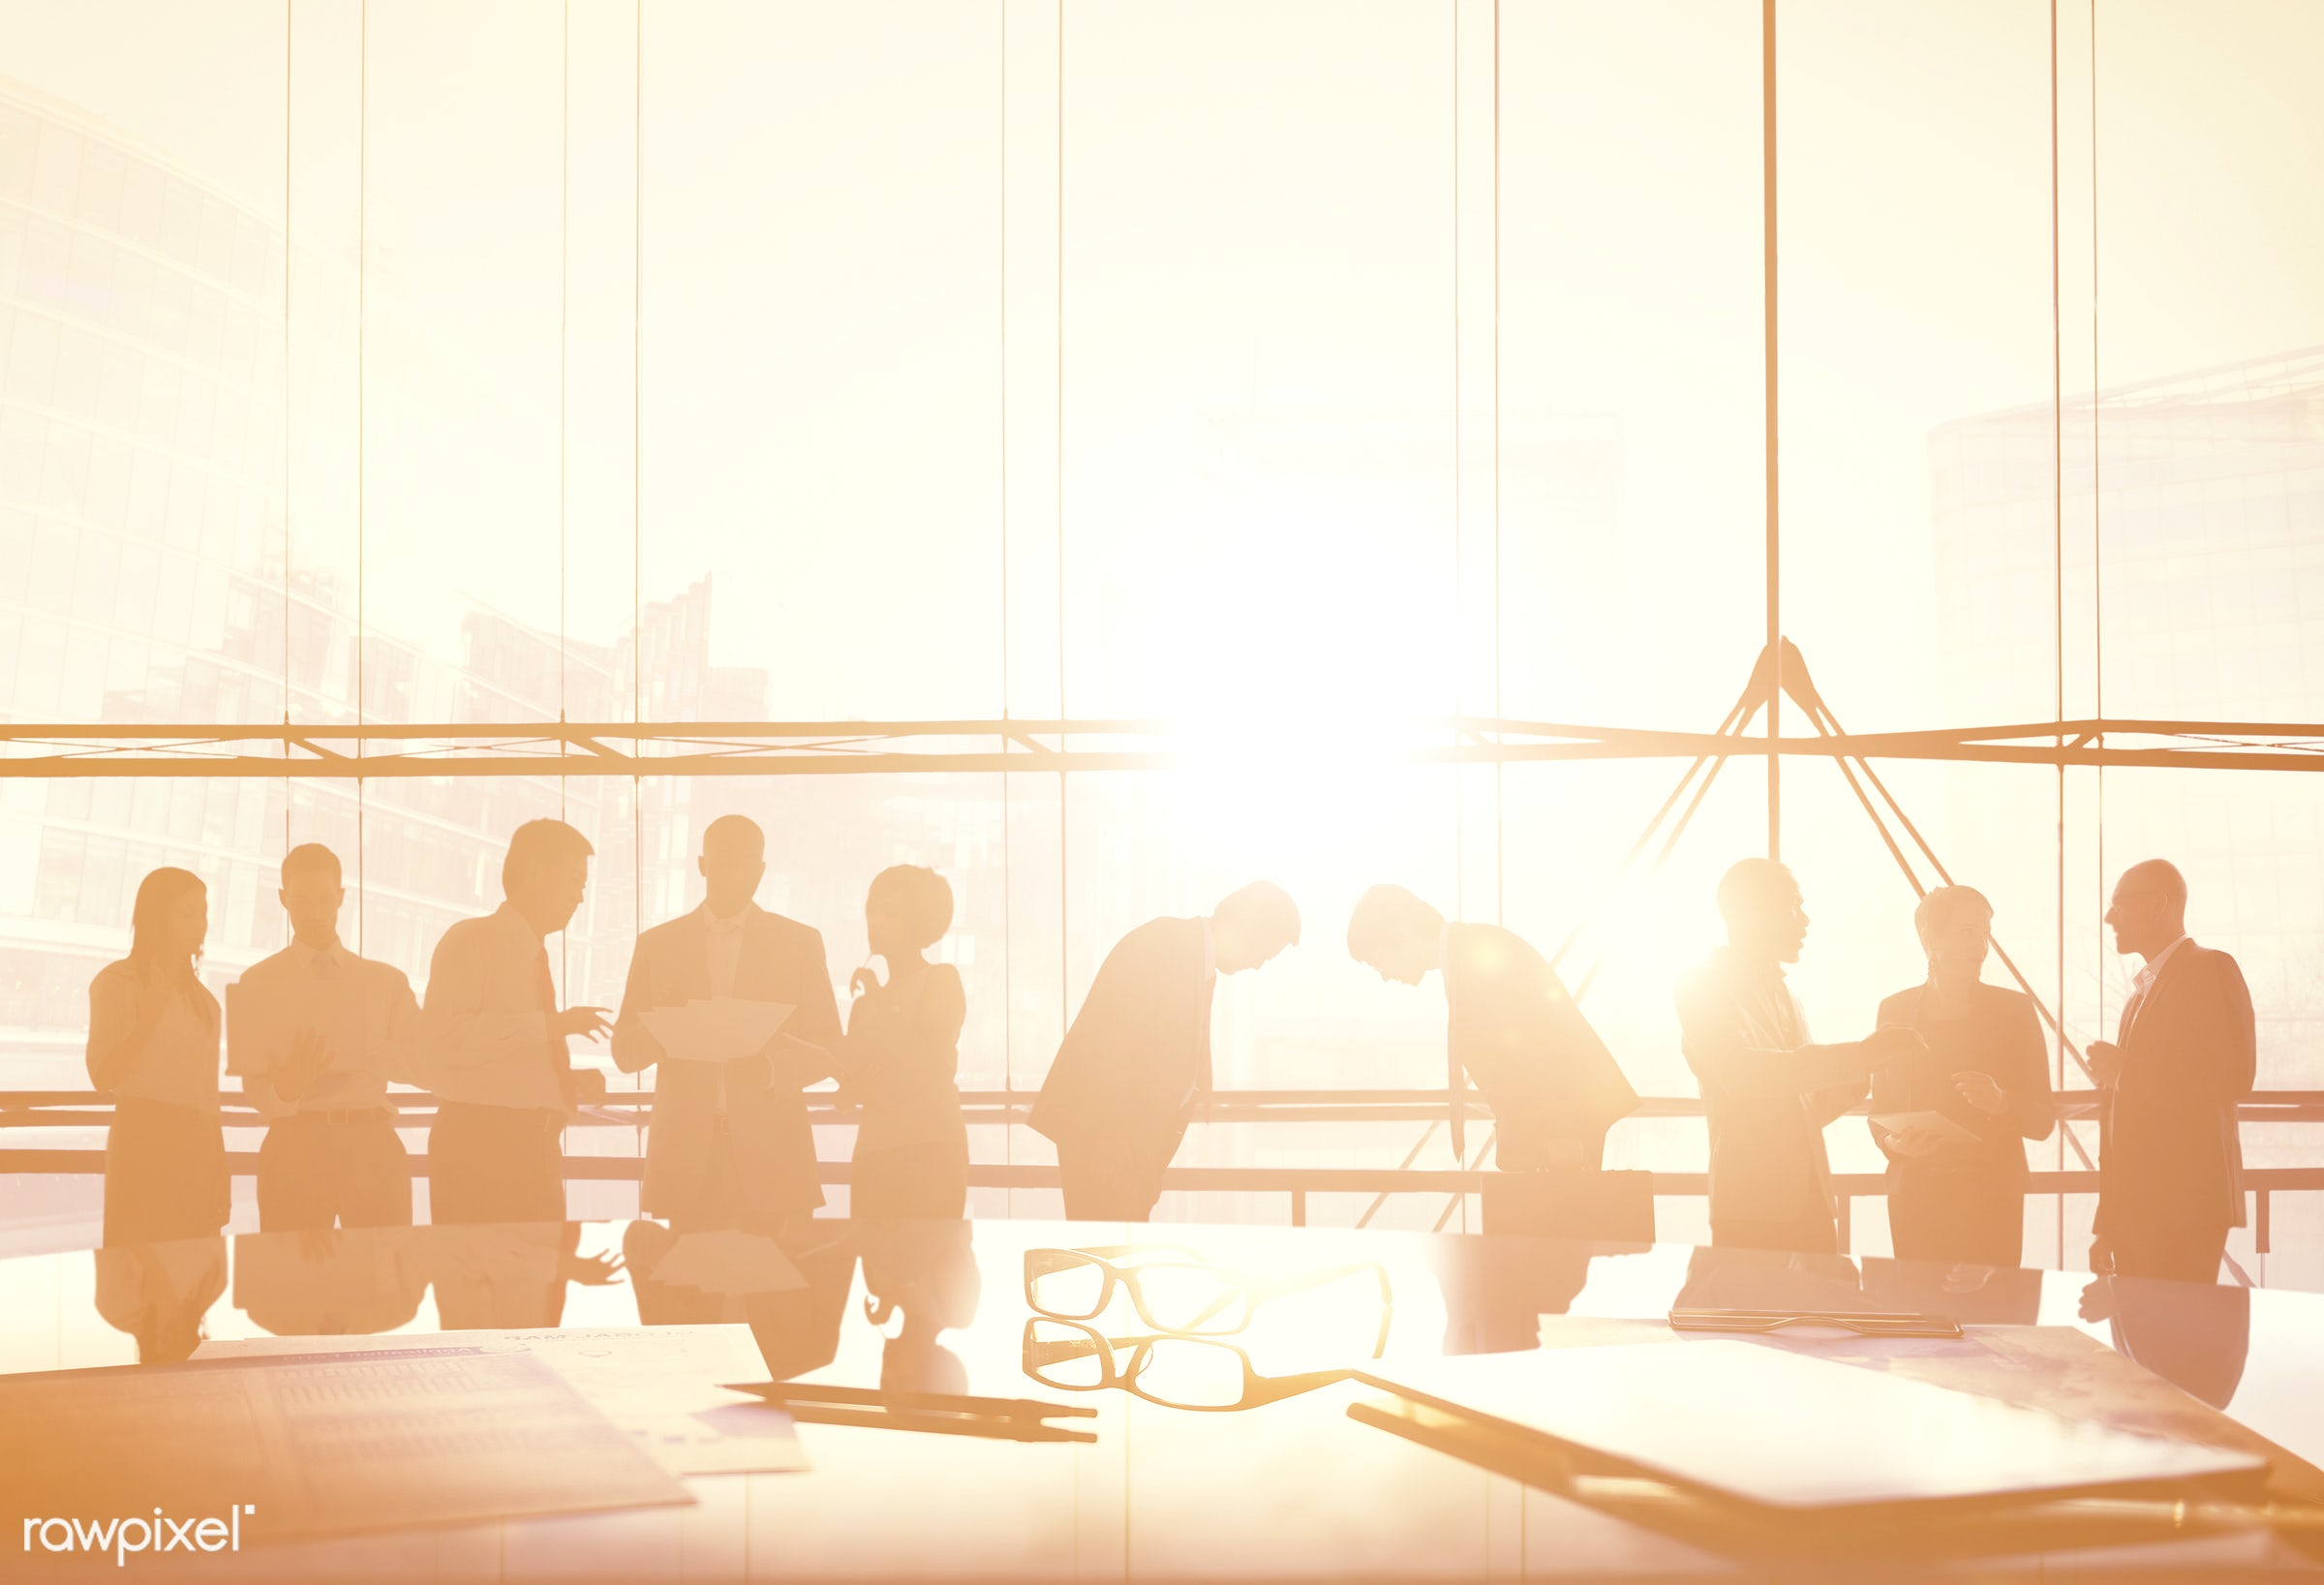 advice, agreement, back lit, board room, bowing, brainstorming, buildings, business, business people, businessmen,...